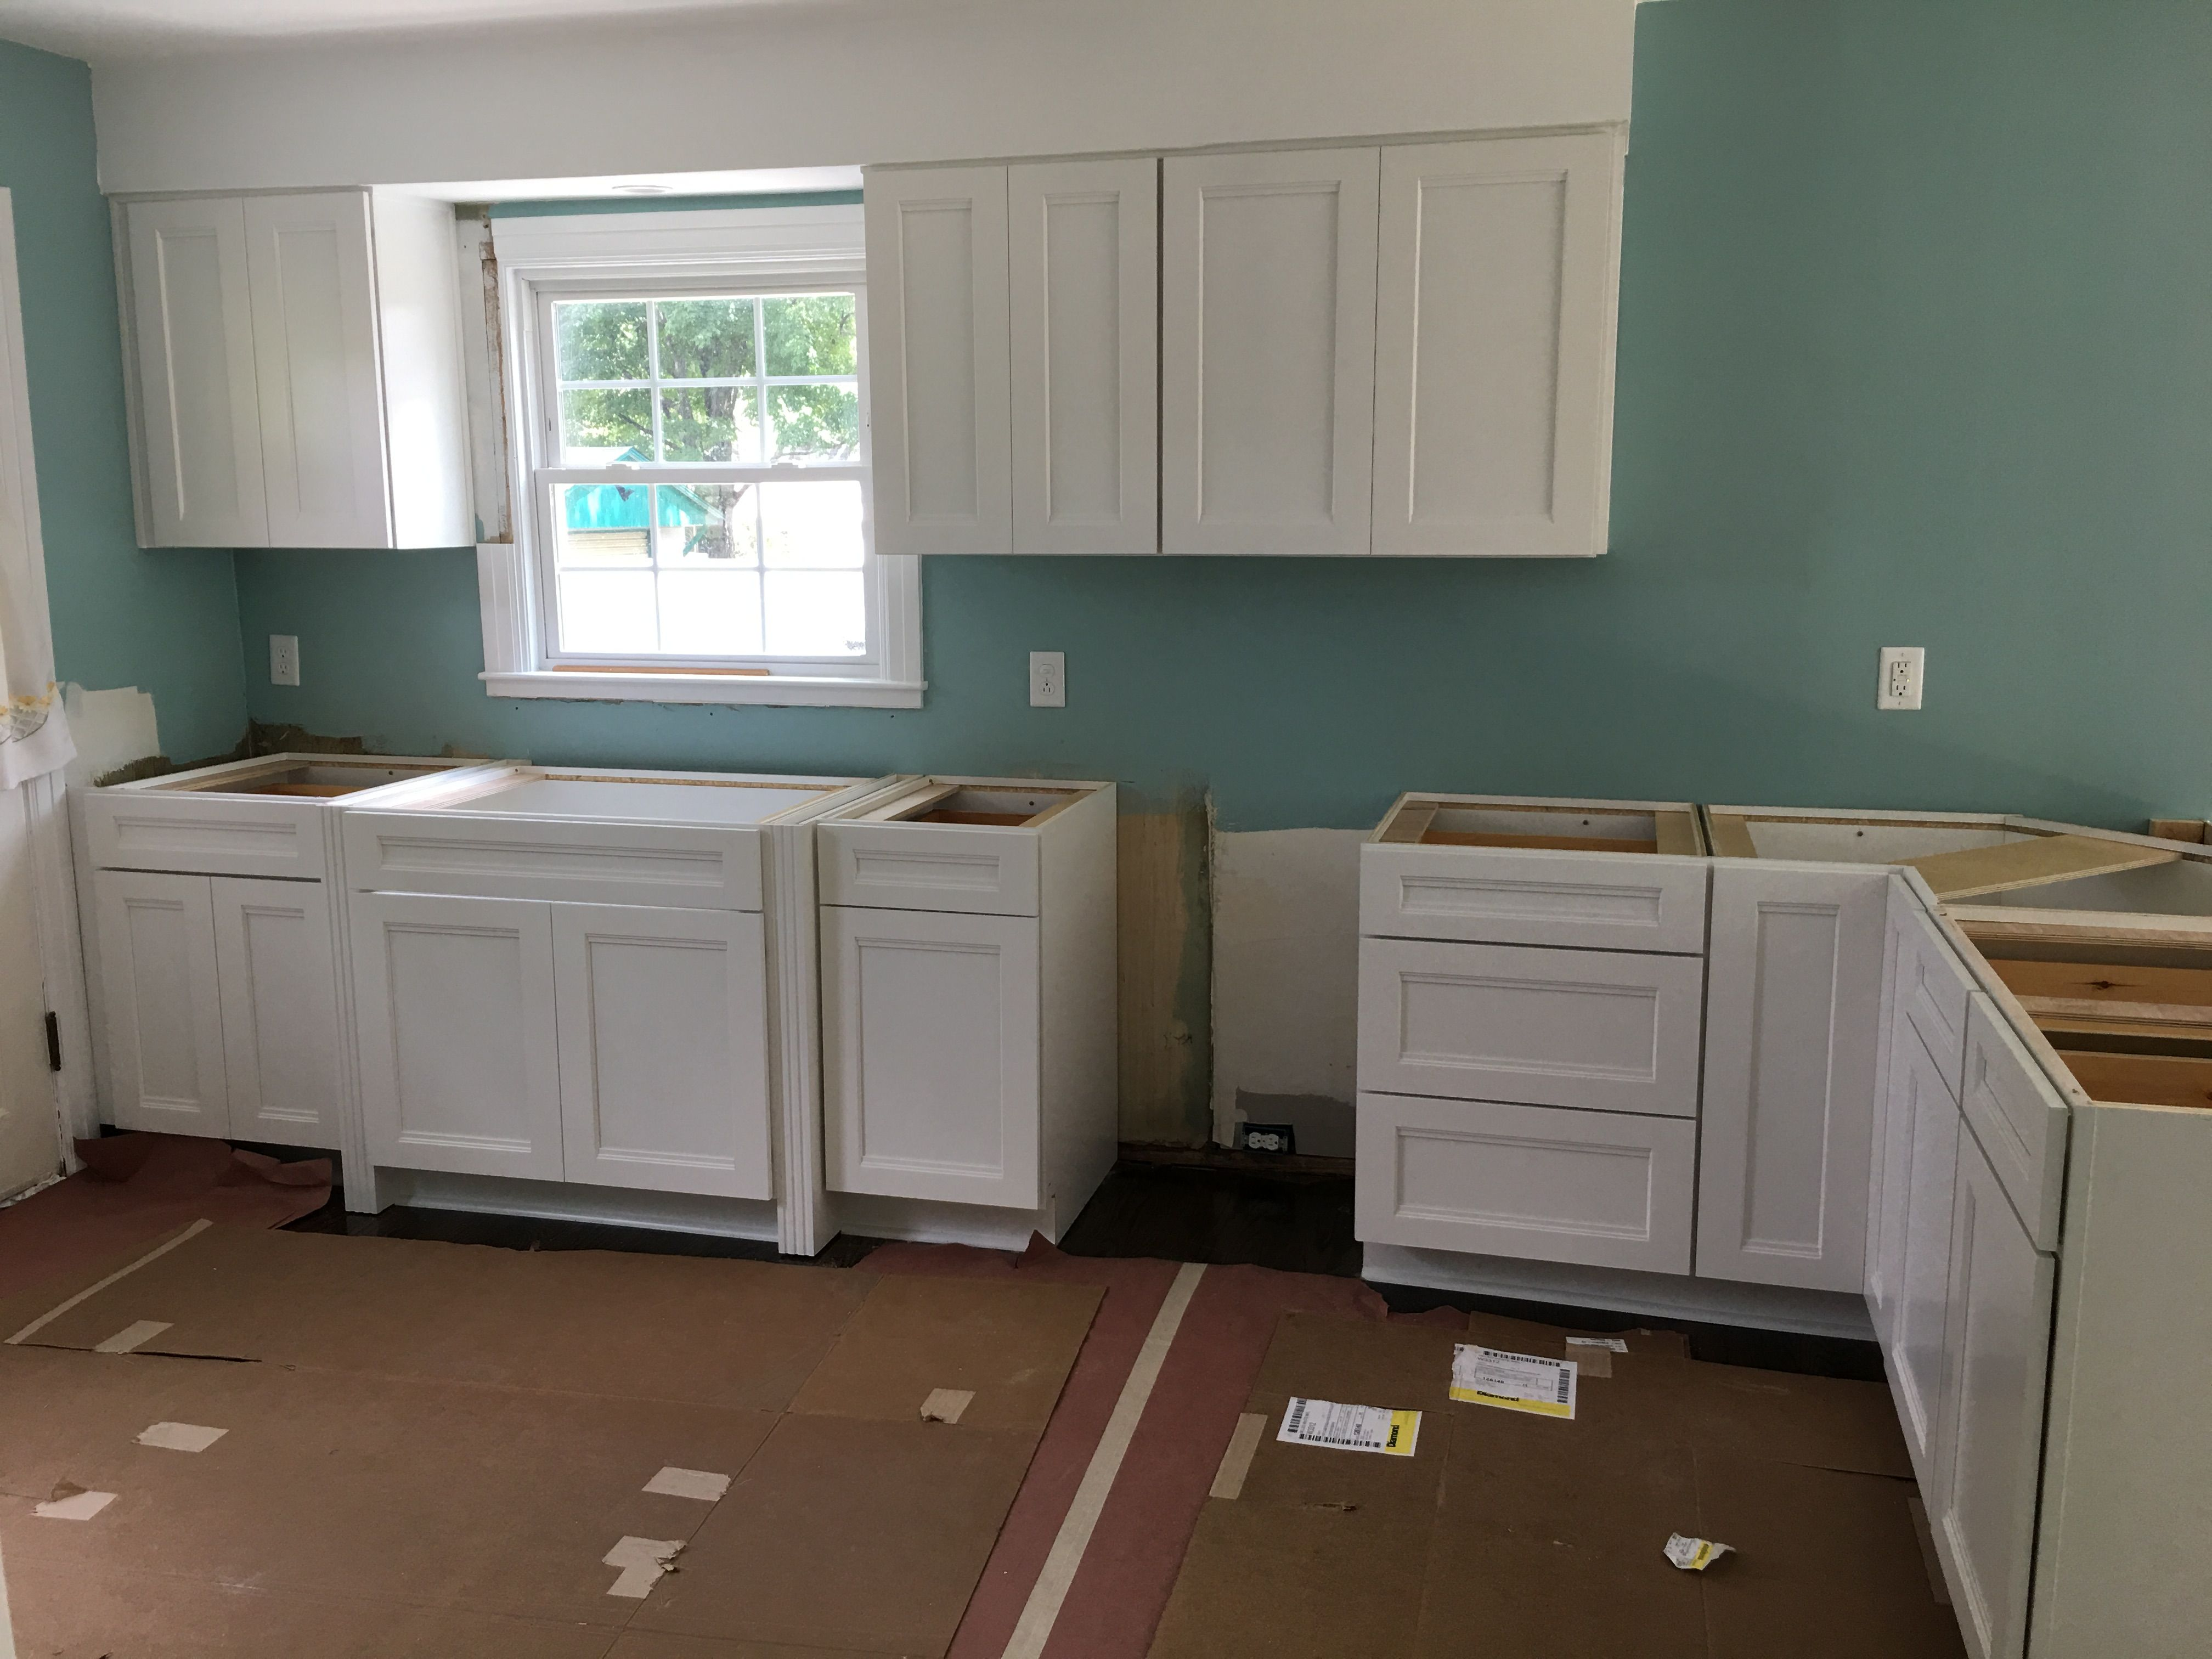 Diamond cabinet white nelson full overlay from lowes